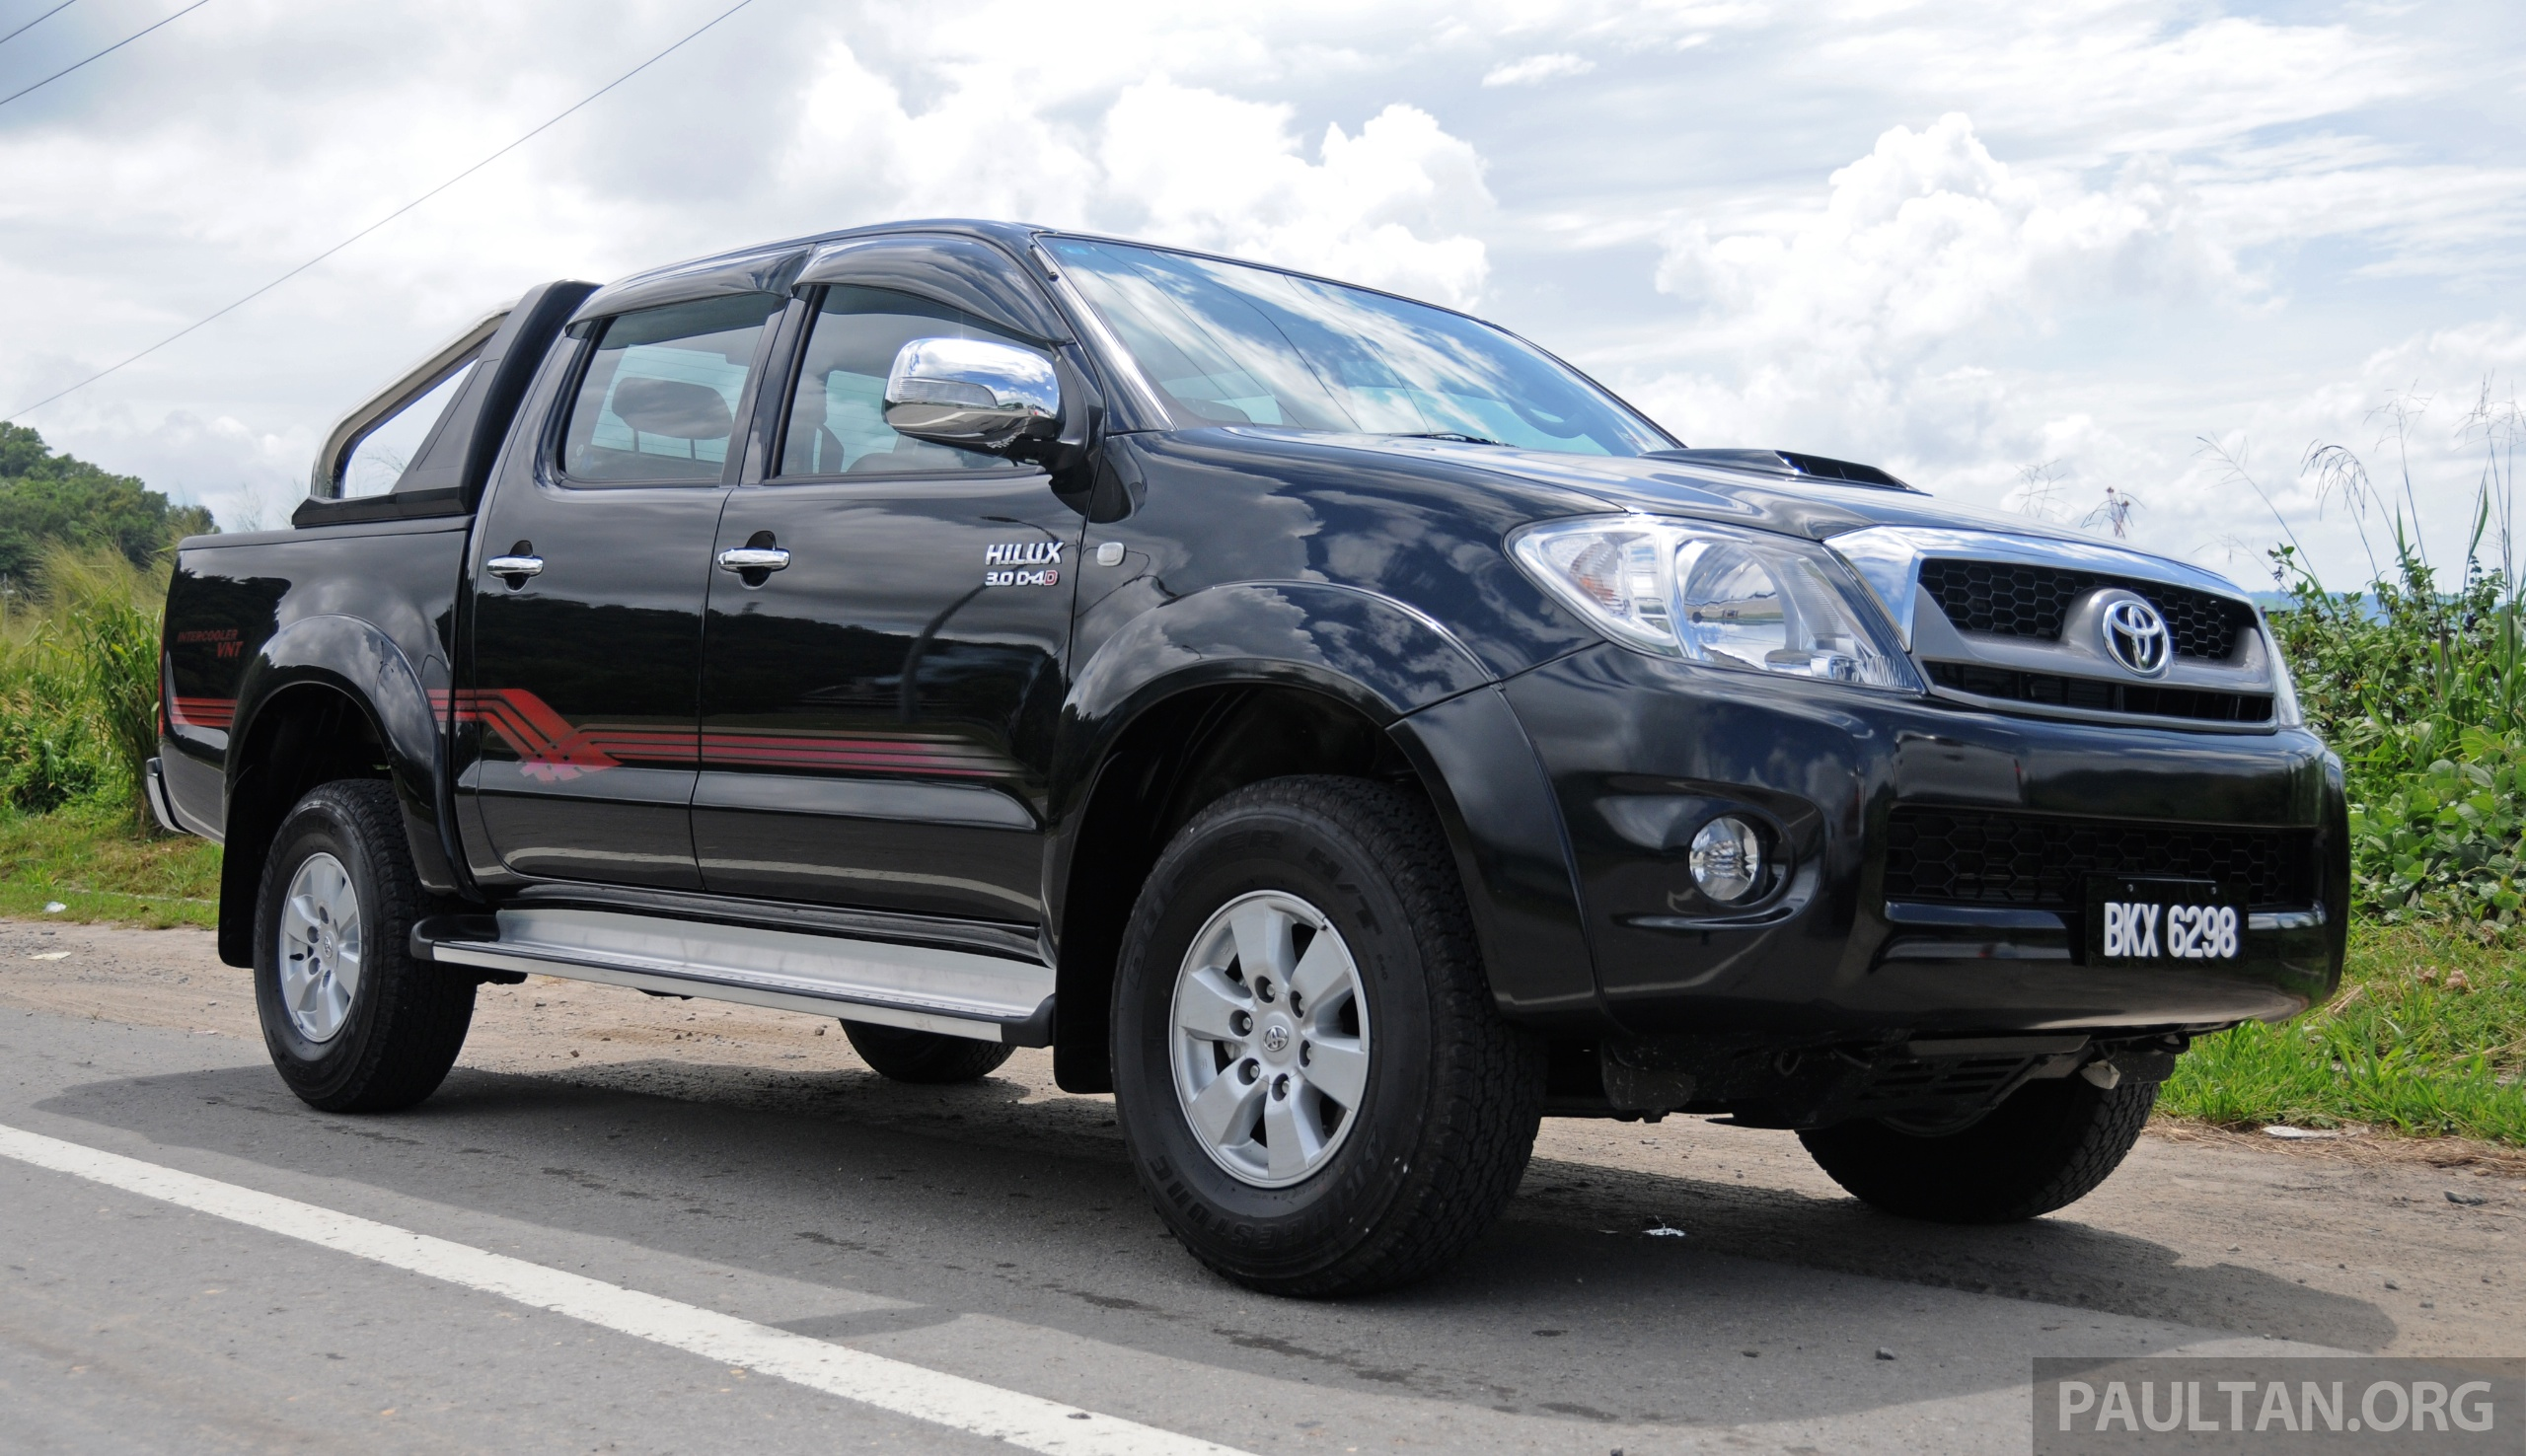 2005 2010 Toyota Hilux Fortuner And Innova Recalled Image 239996